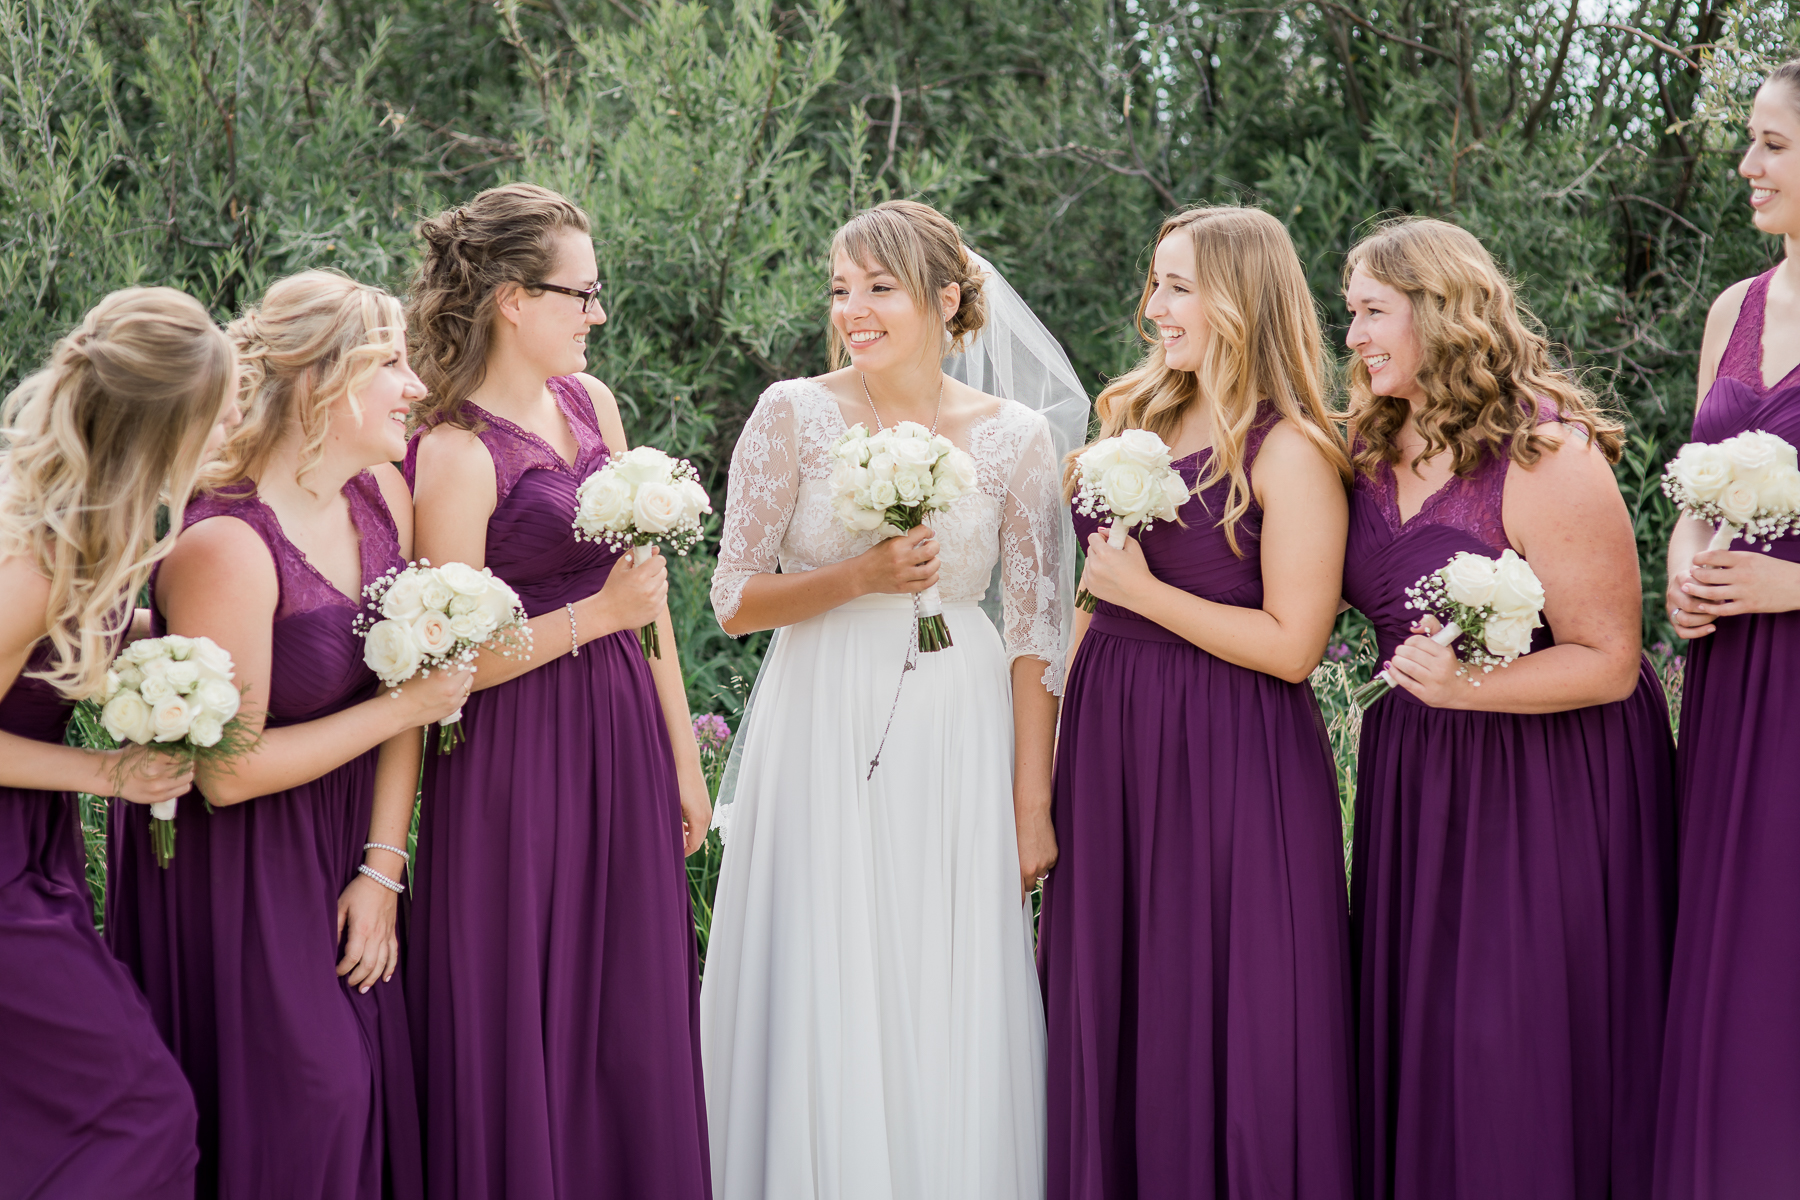 Wyoming wedding with purple floor length bridesmaids gowns